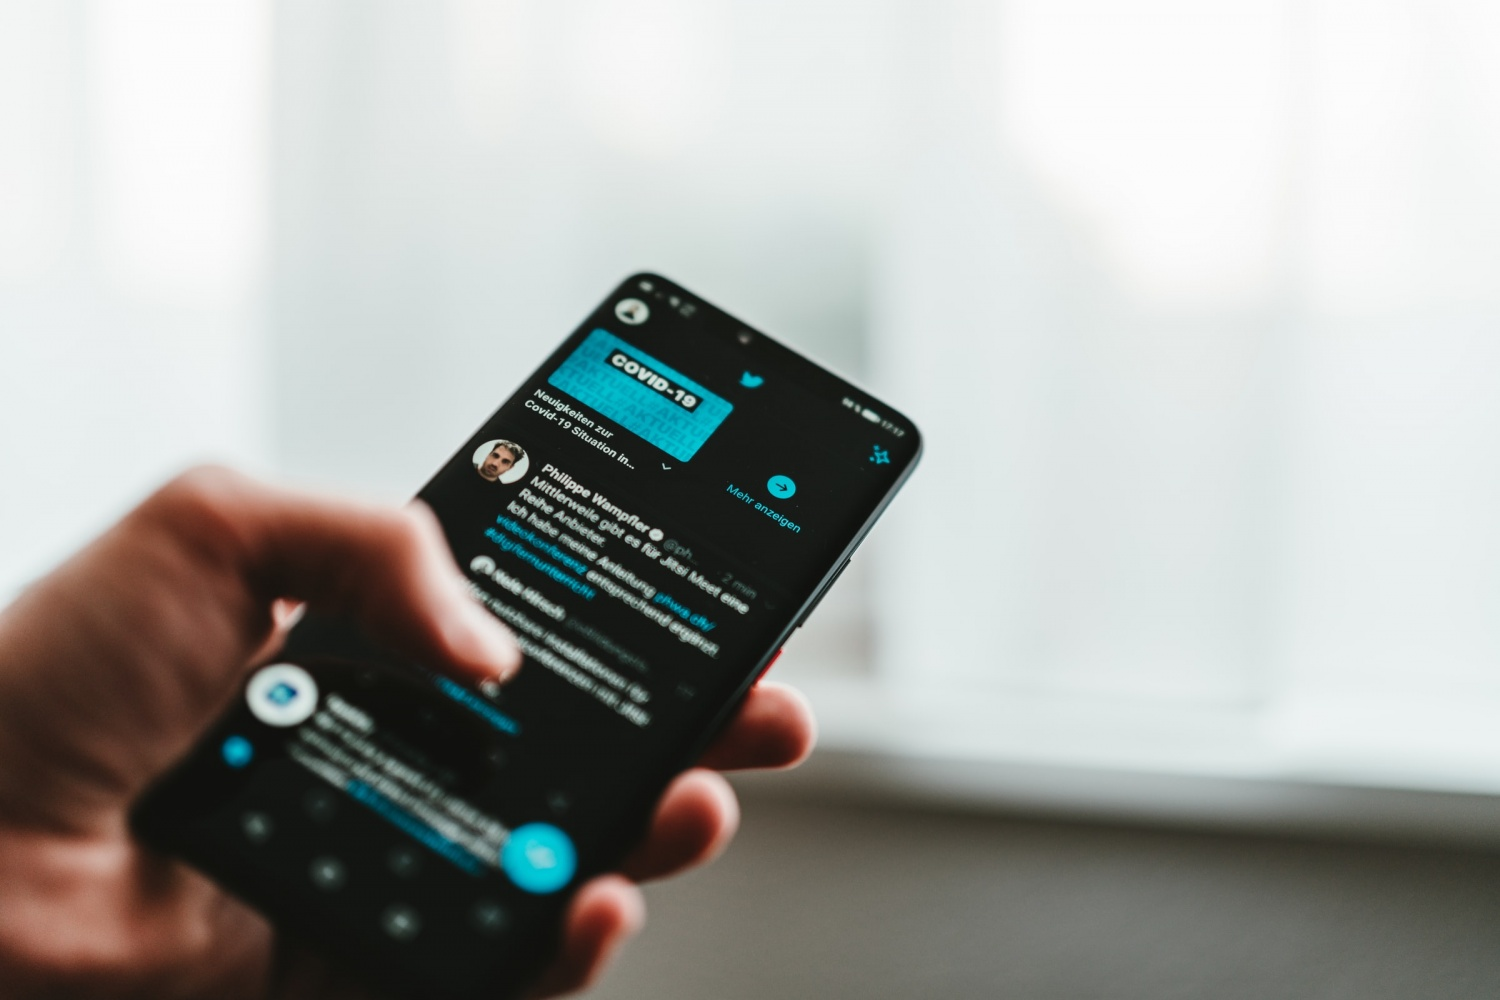 Twitter Spaces Tab to be Available on Website   Users Can Now Also Access In-App Newsletter Subscription